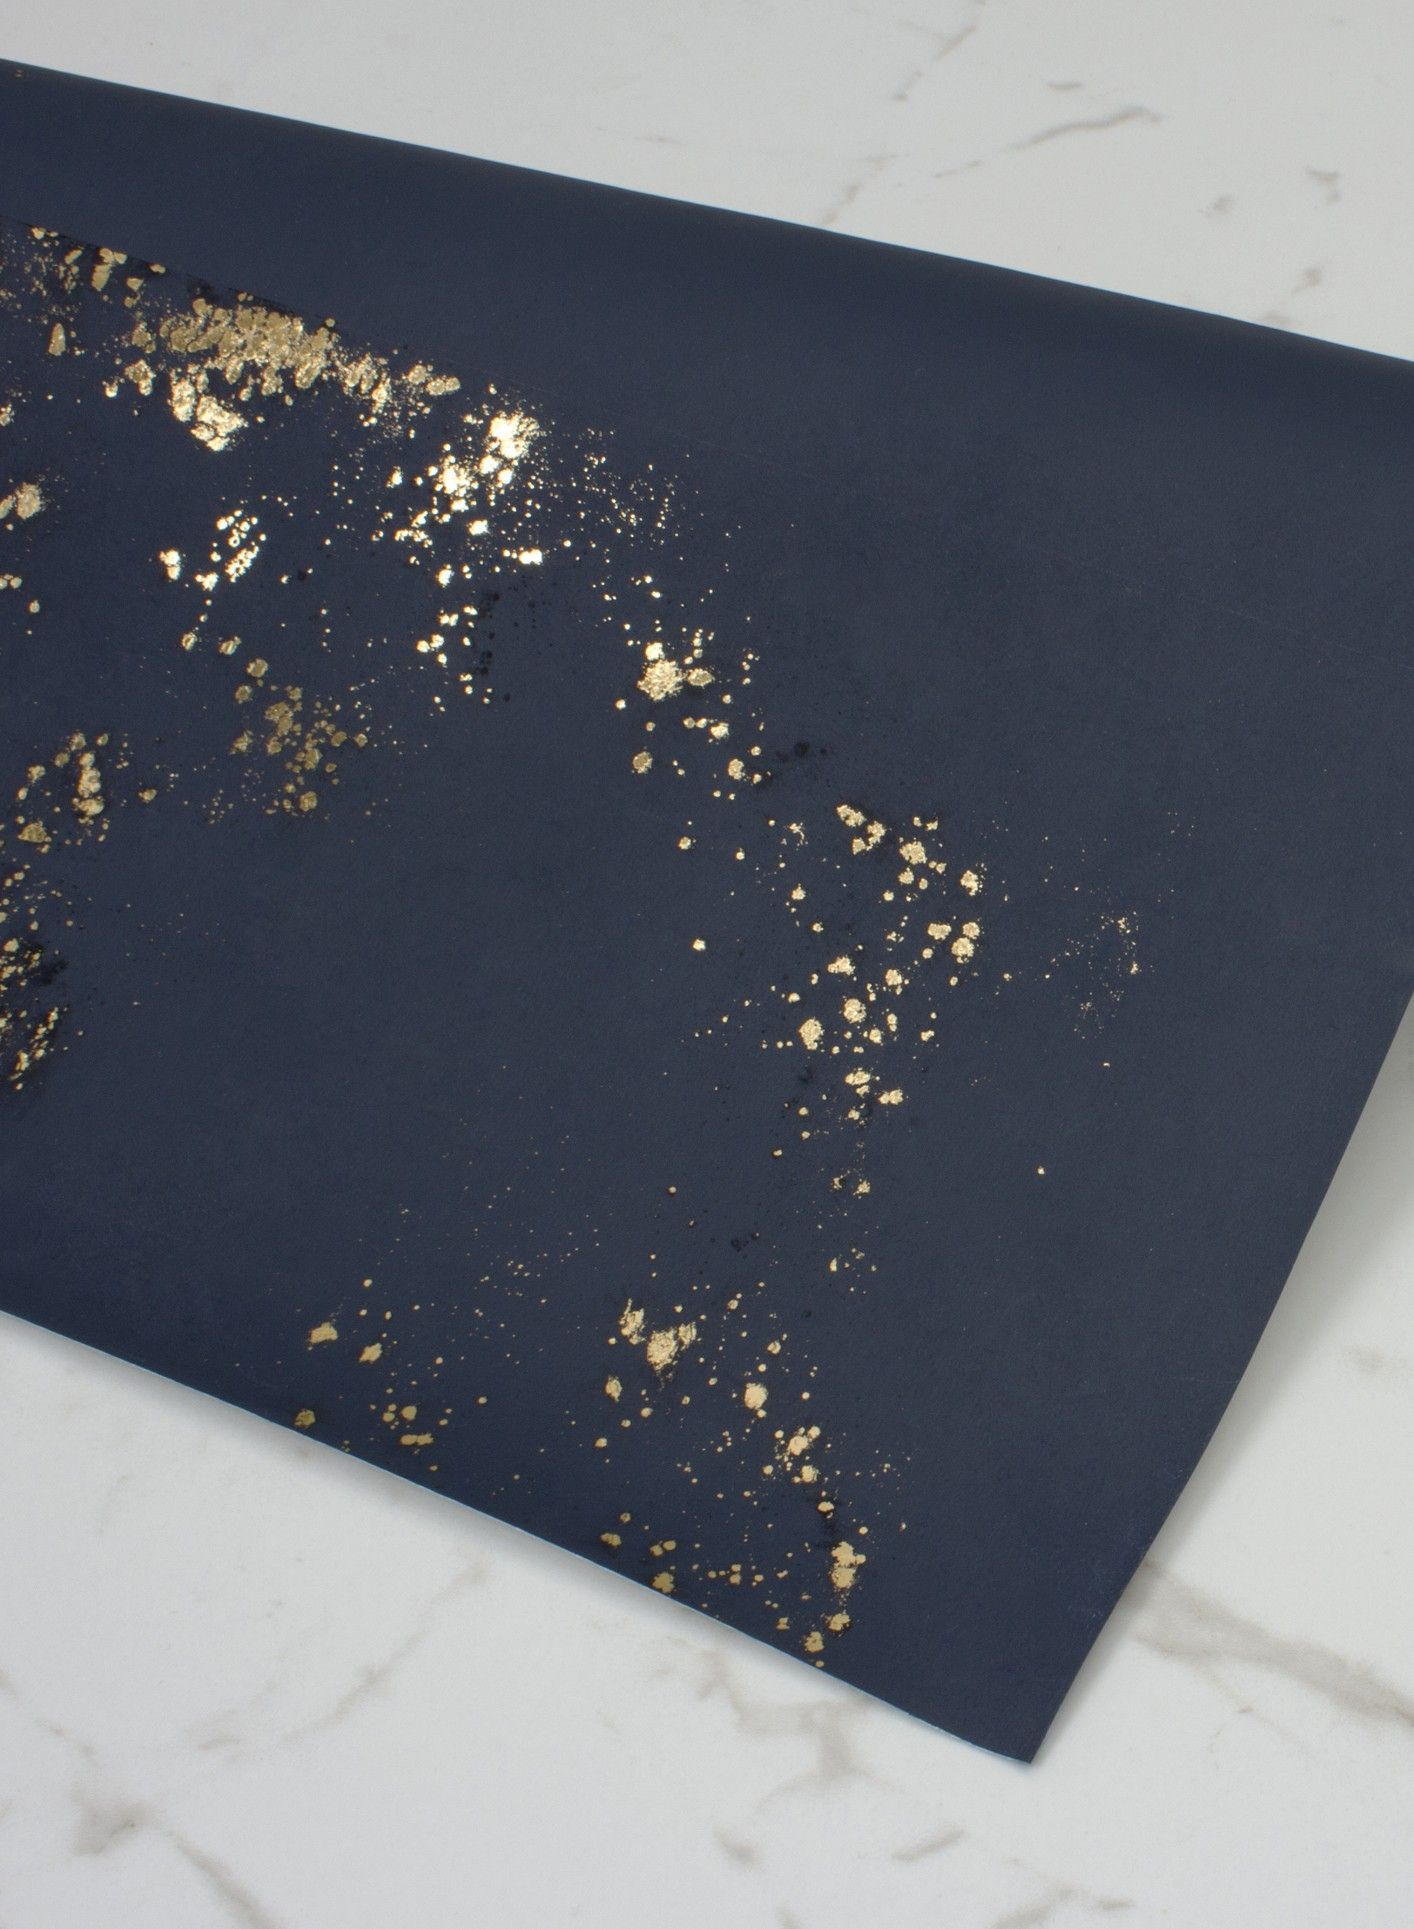 Glitter Peacock Navy / Gold wallpaper by Albany Peacock